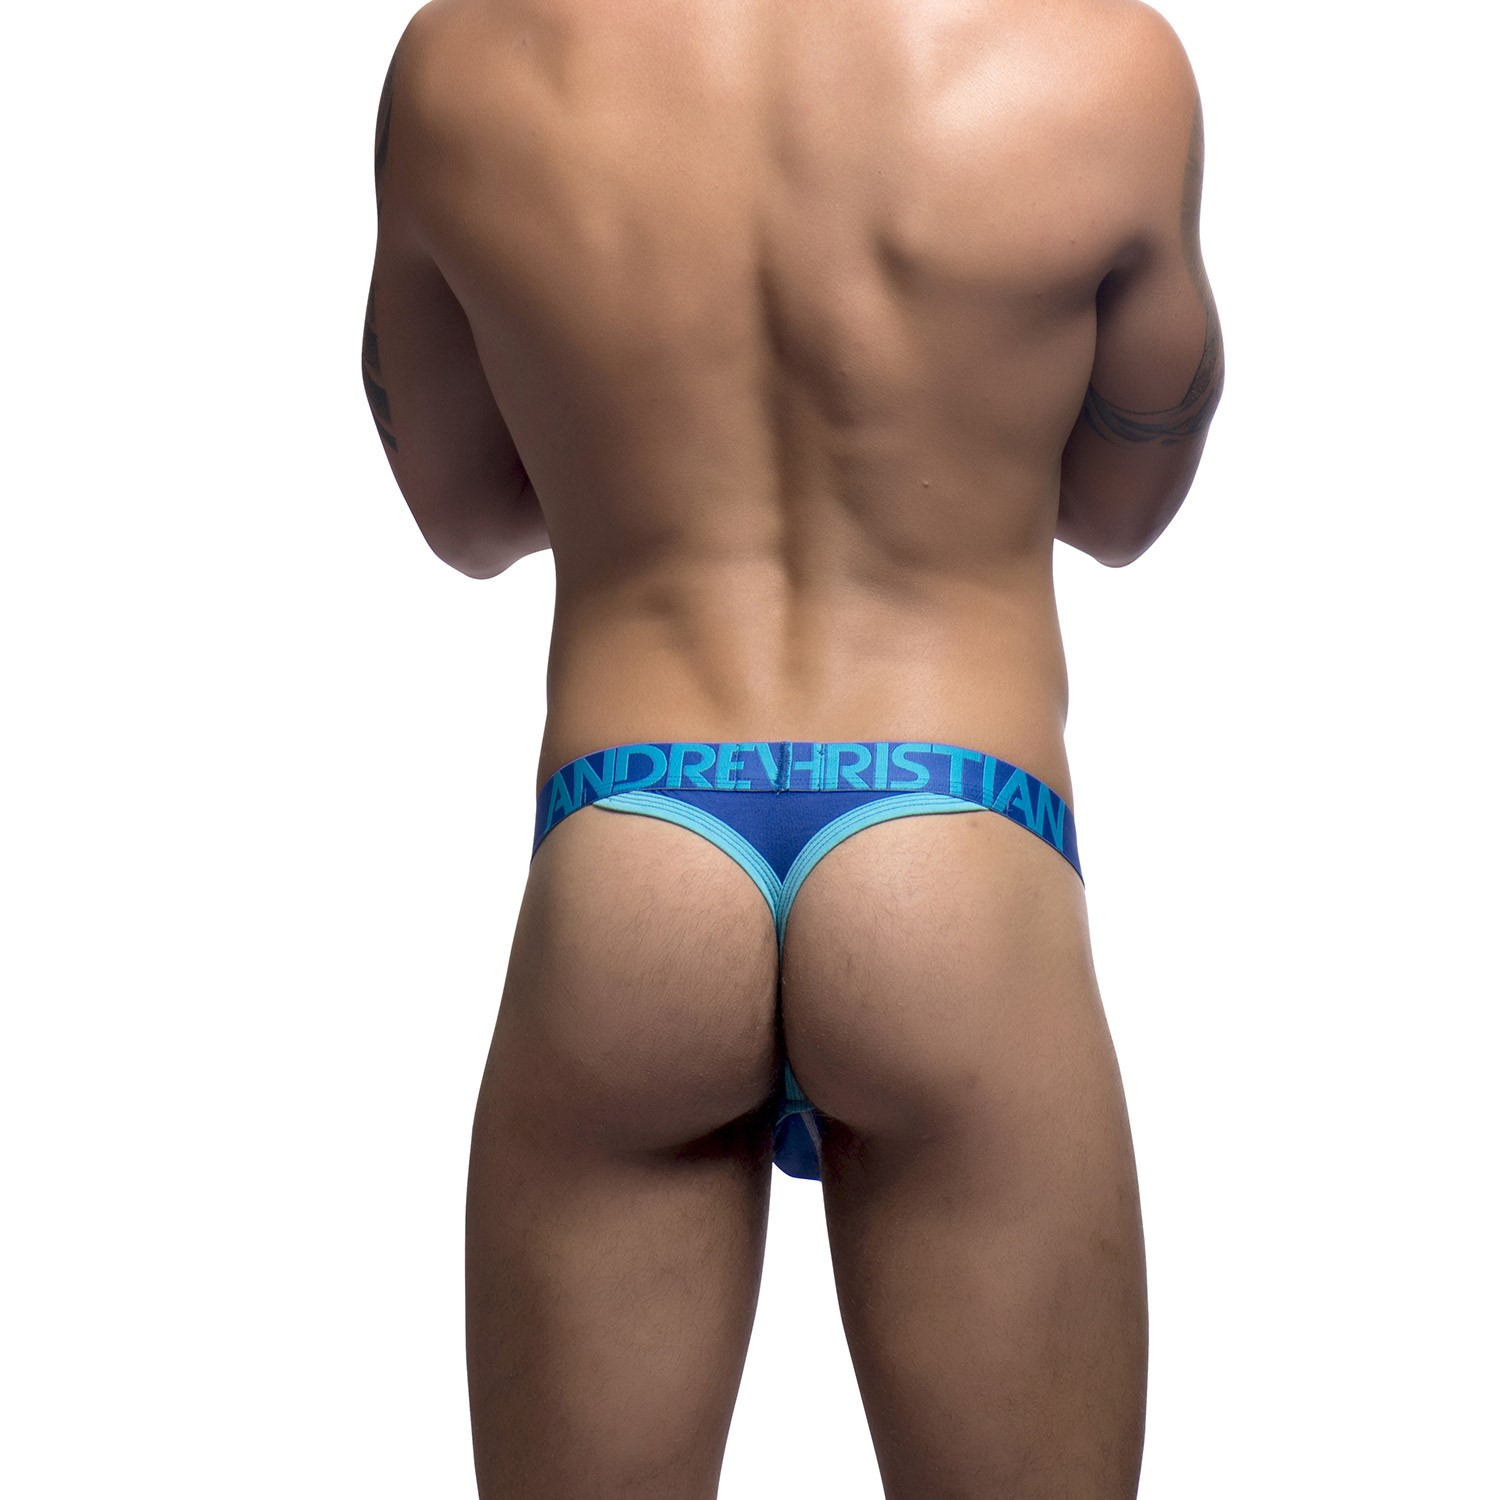 184c14945dd2 Andrew Christian Show-It Thong - Thong - Trunks - Underwear - Timarco.eu